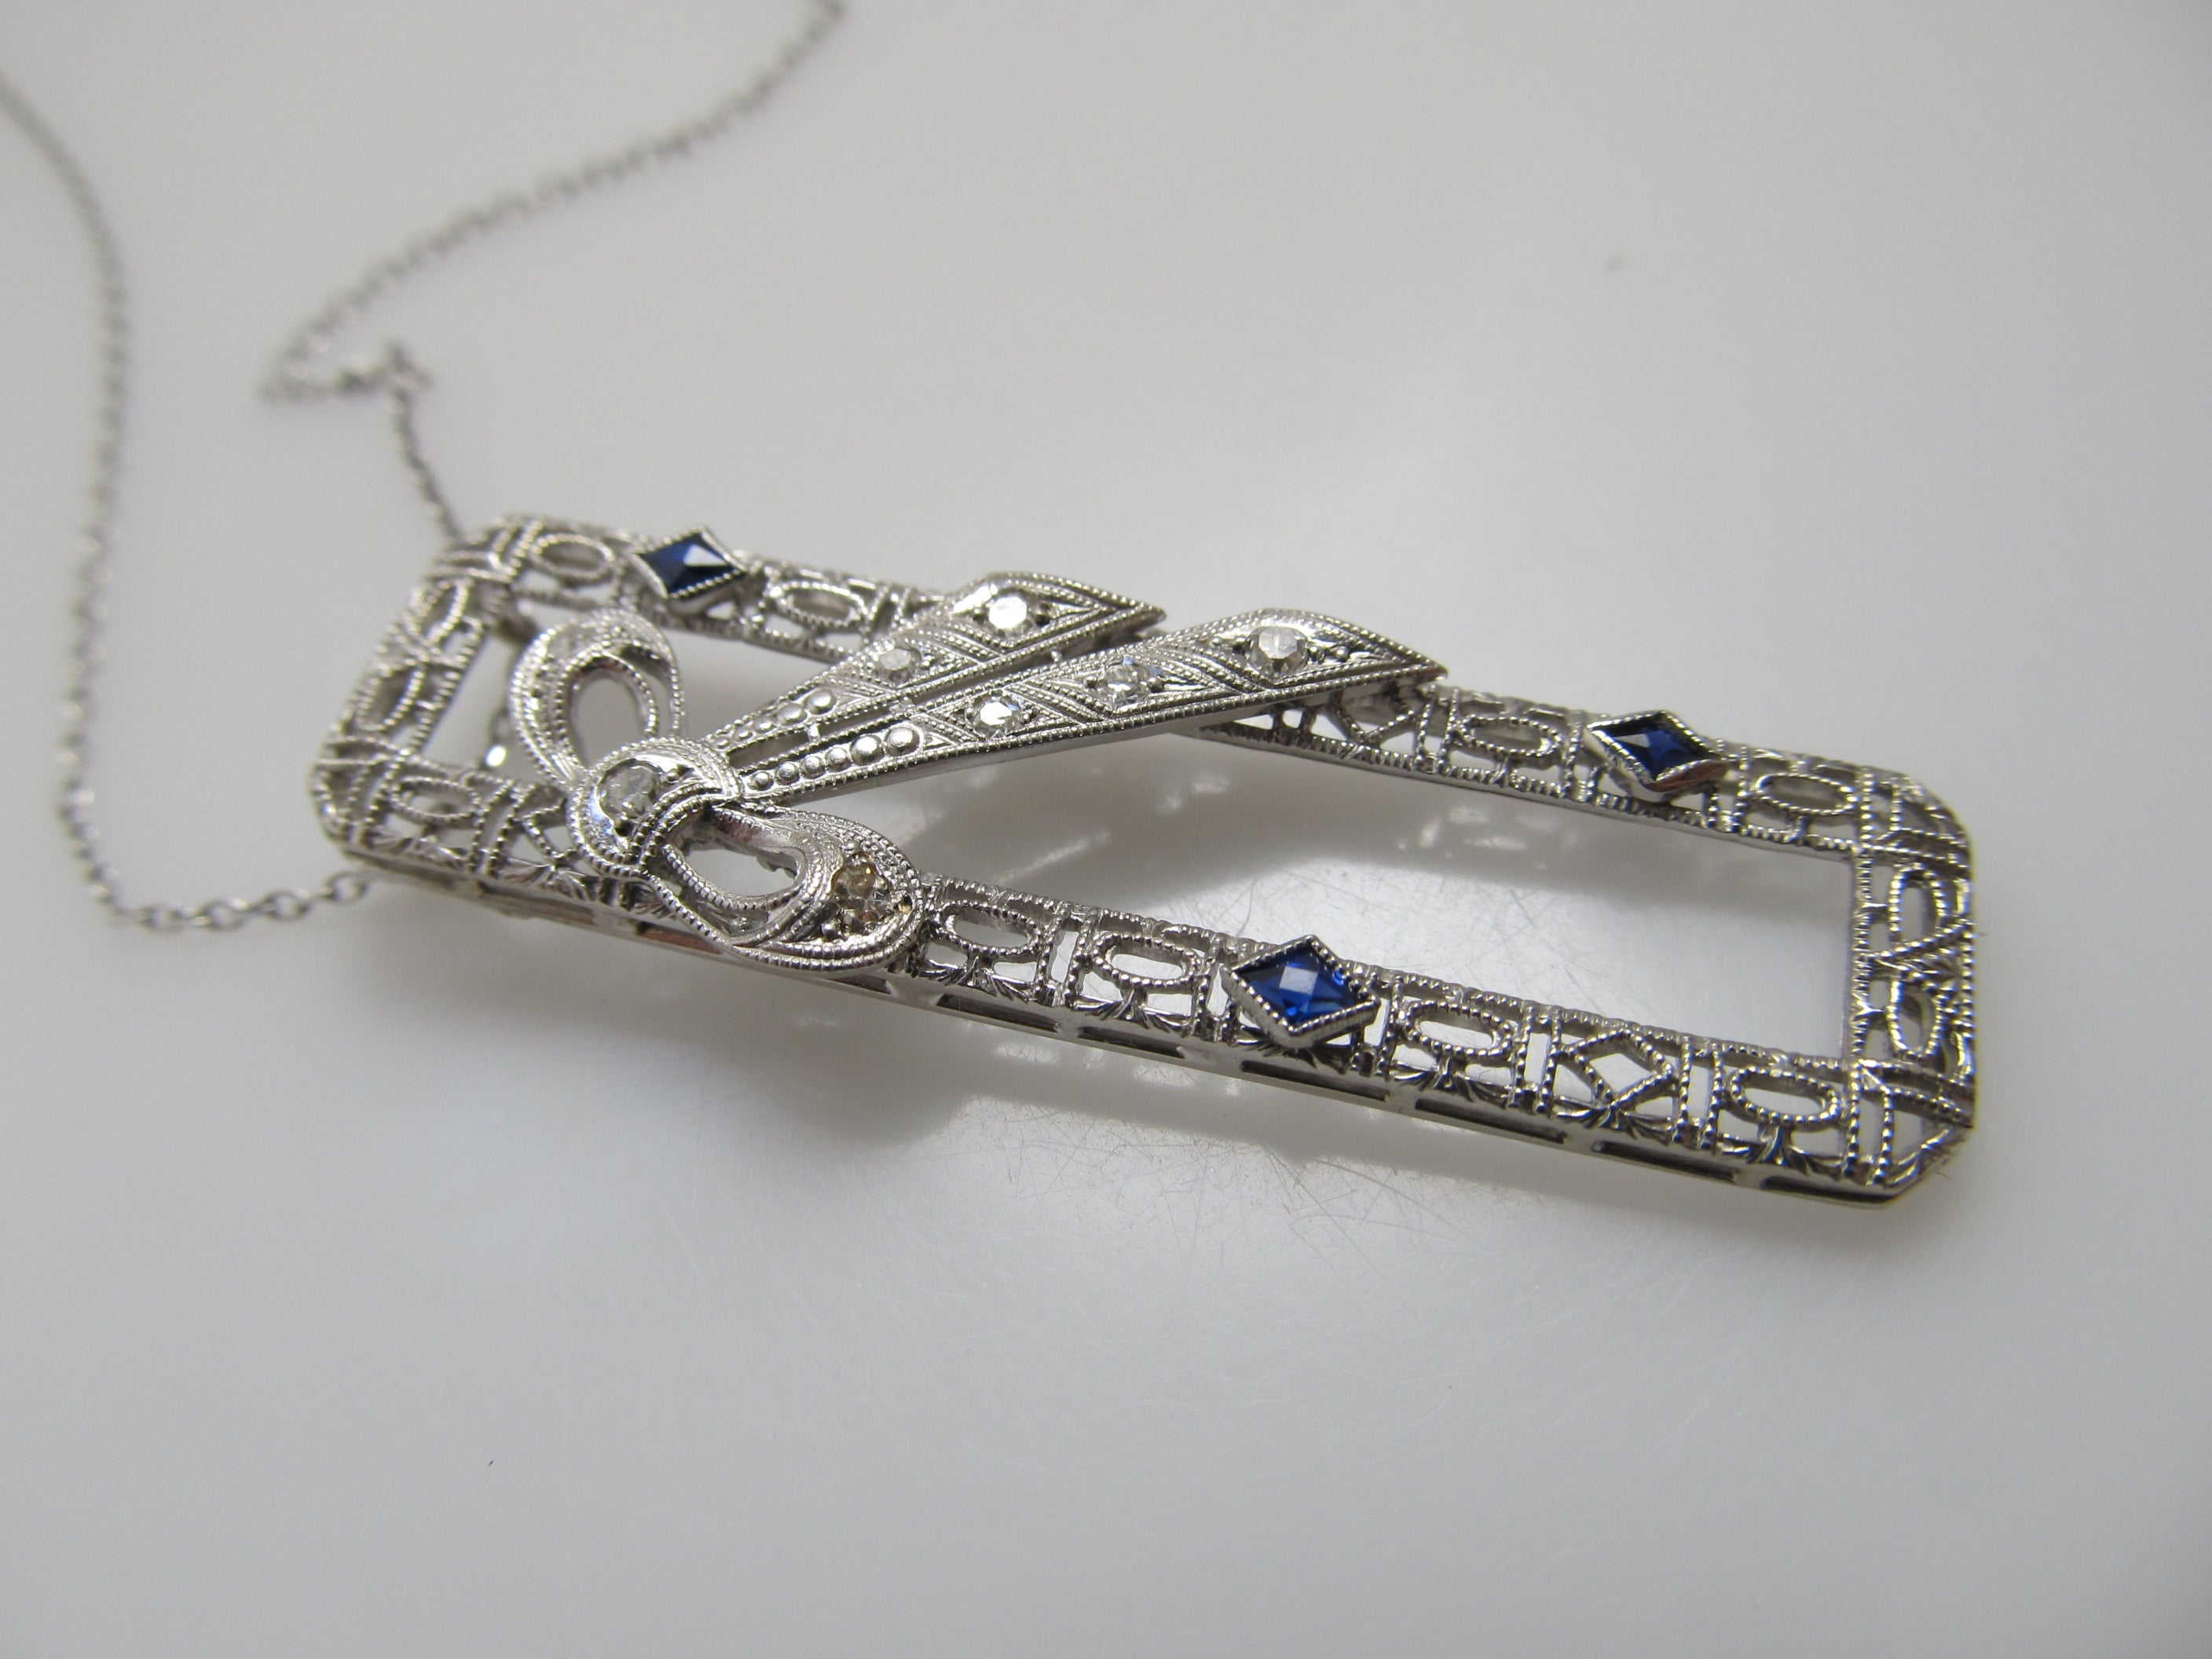 Antique 14k white gold filigree sapphire diamond necklace